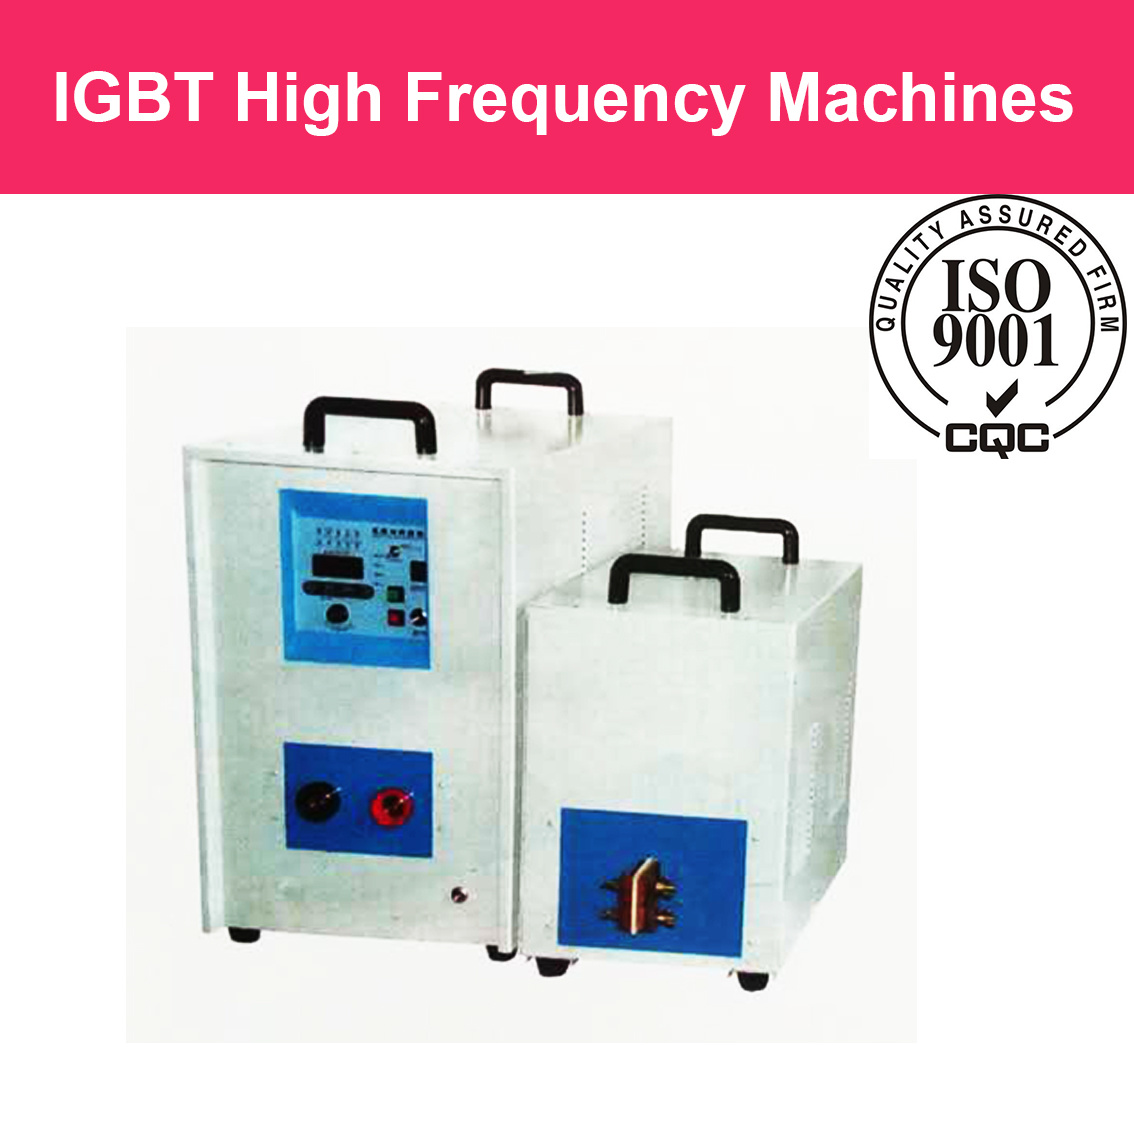 High Frequency Heating Machine Induction Equipment Series for Melting Smelting Bending Thermal Treatment Welding Devices